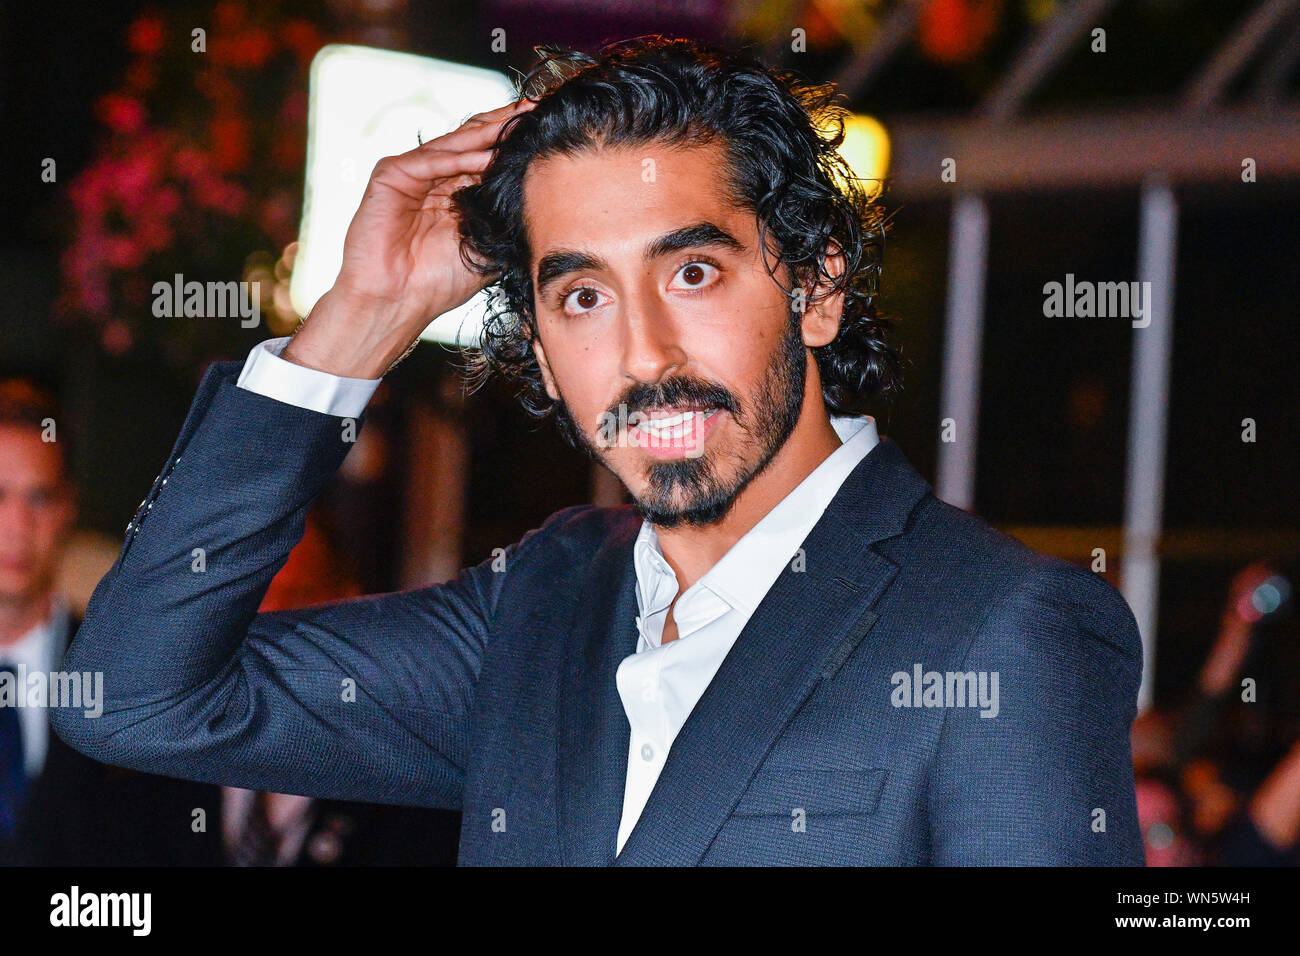 Toronto, Kanada. 05 Sep, 2019. - Englisch Schauspieler Dev Patel kommt für die Premiere der persönlichen Geschichte von David Copperfield im Princes of Wales Theater während der 2019 Toronto International Film Festival. Jamie Simon/JSP/EXimages. Credit: EXImages/Alamy leben Nachrichten Stockfoto